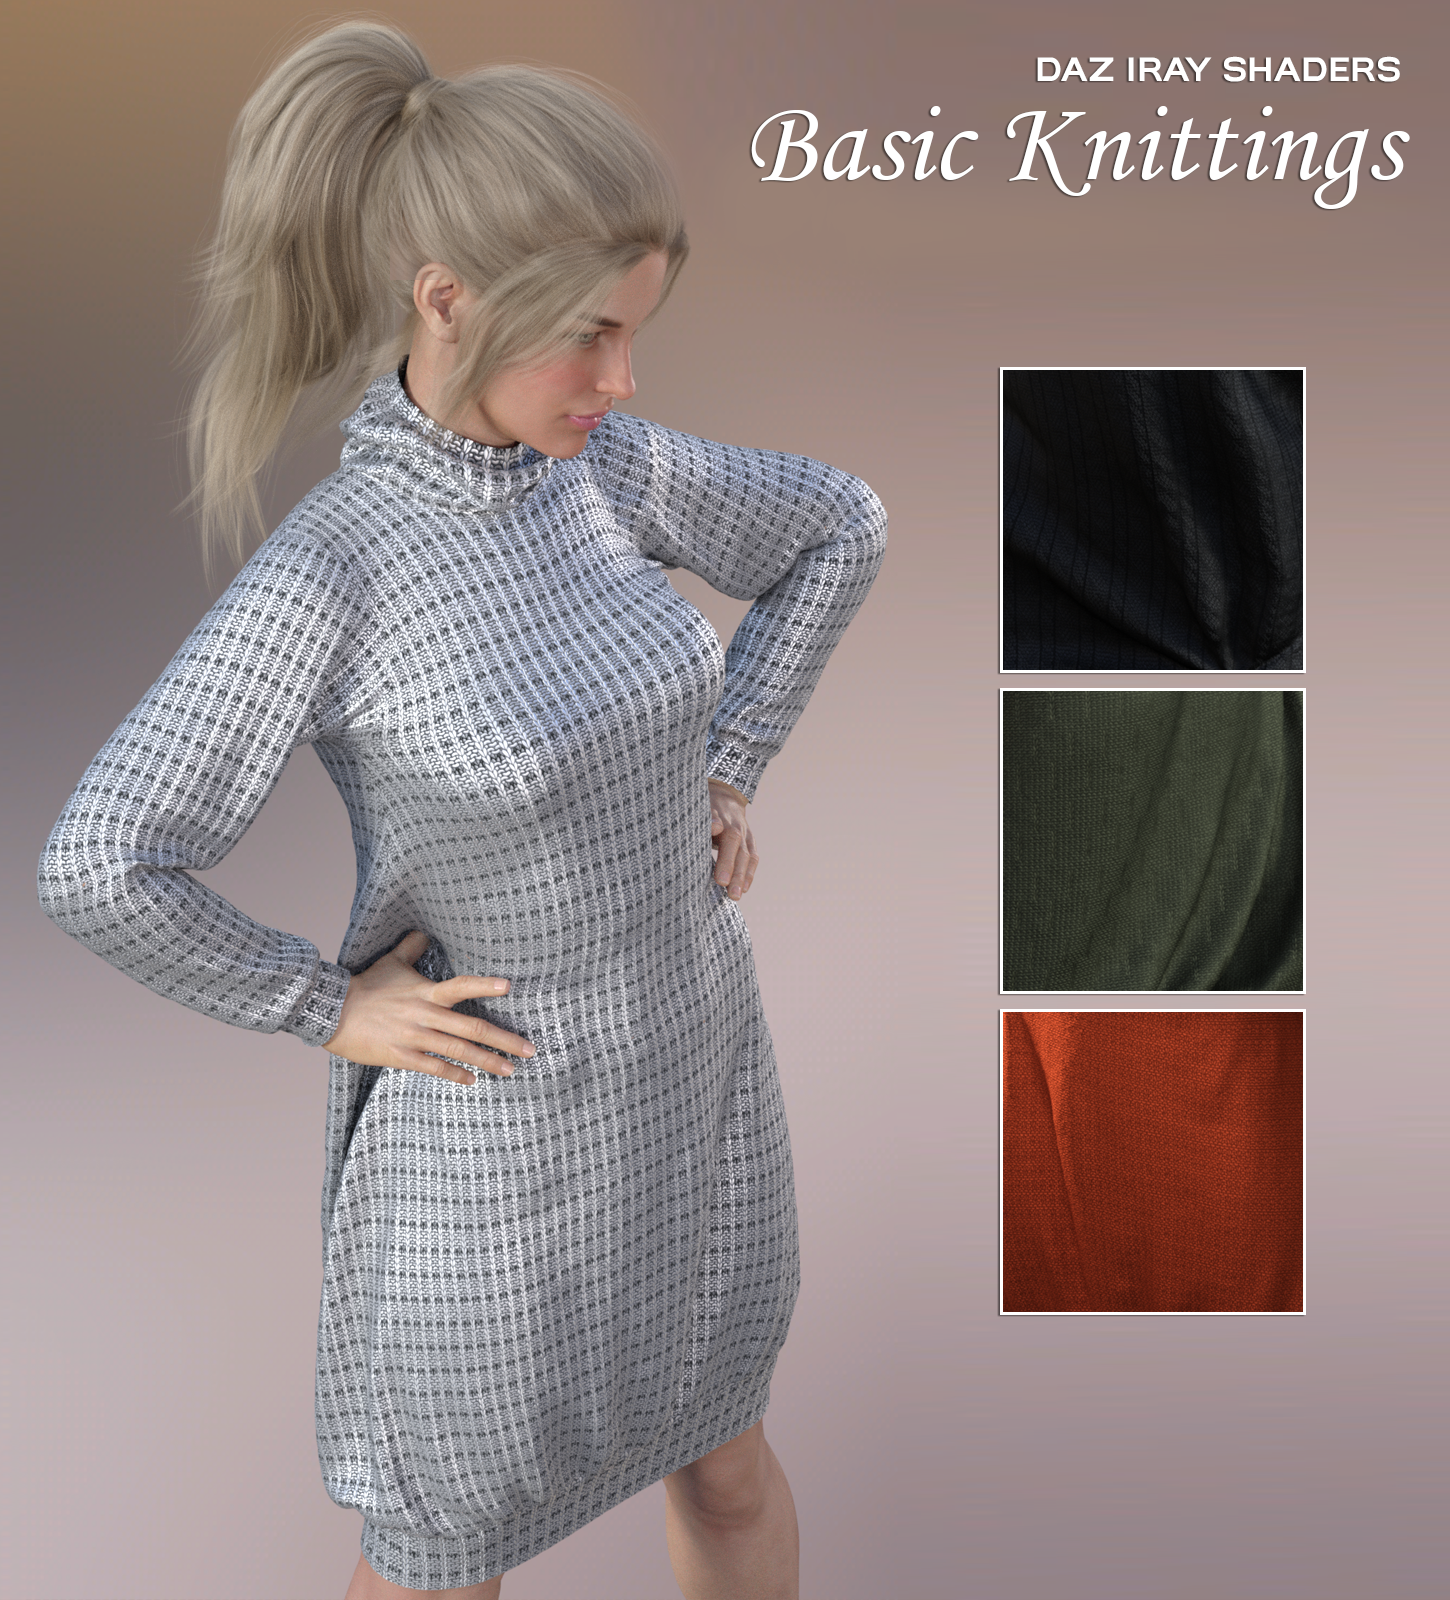 Daz Iray - Basic Knittings